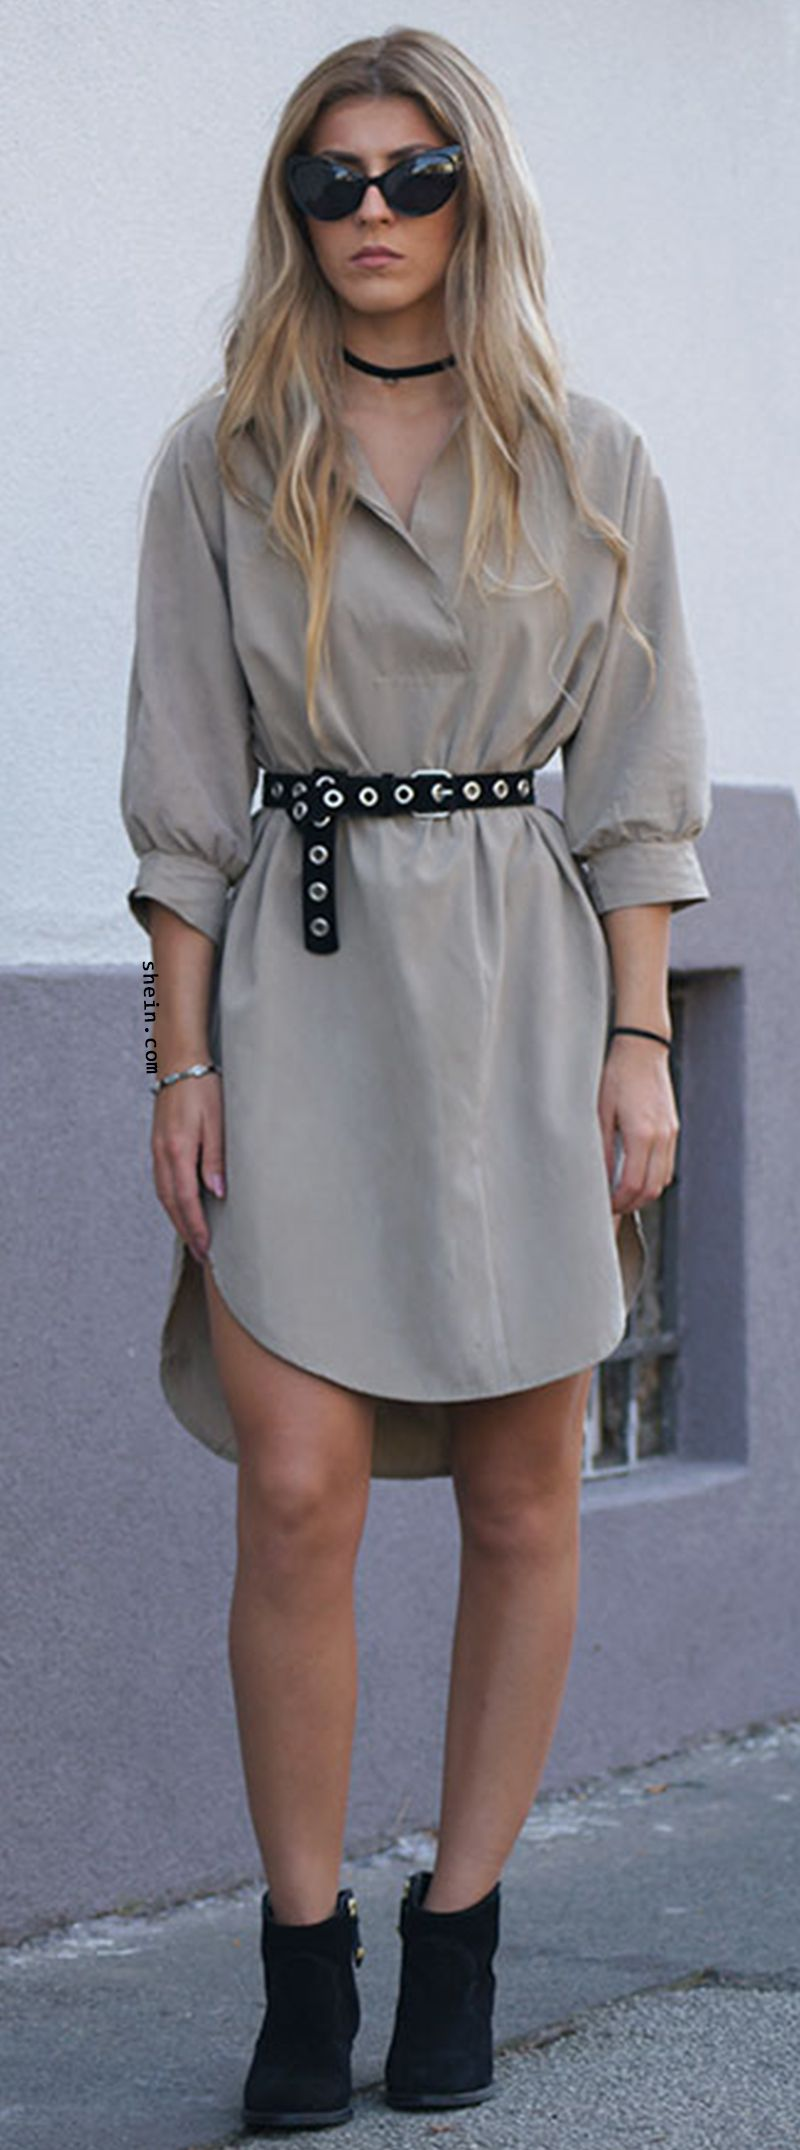 Love this shirt dress most for autumn. Self Tie Curved Hem High Low Shirt Dress. Fashion with detailed design!